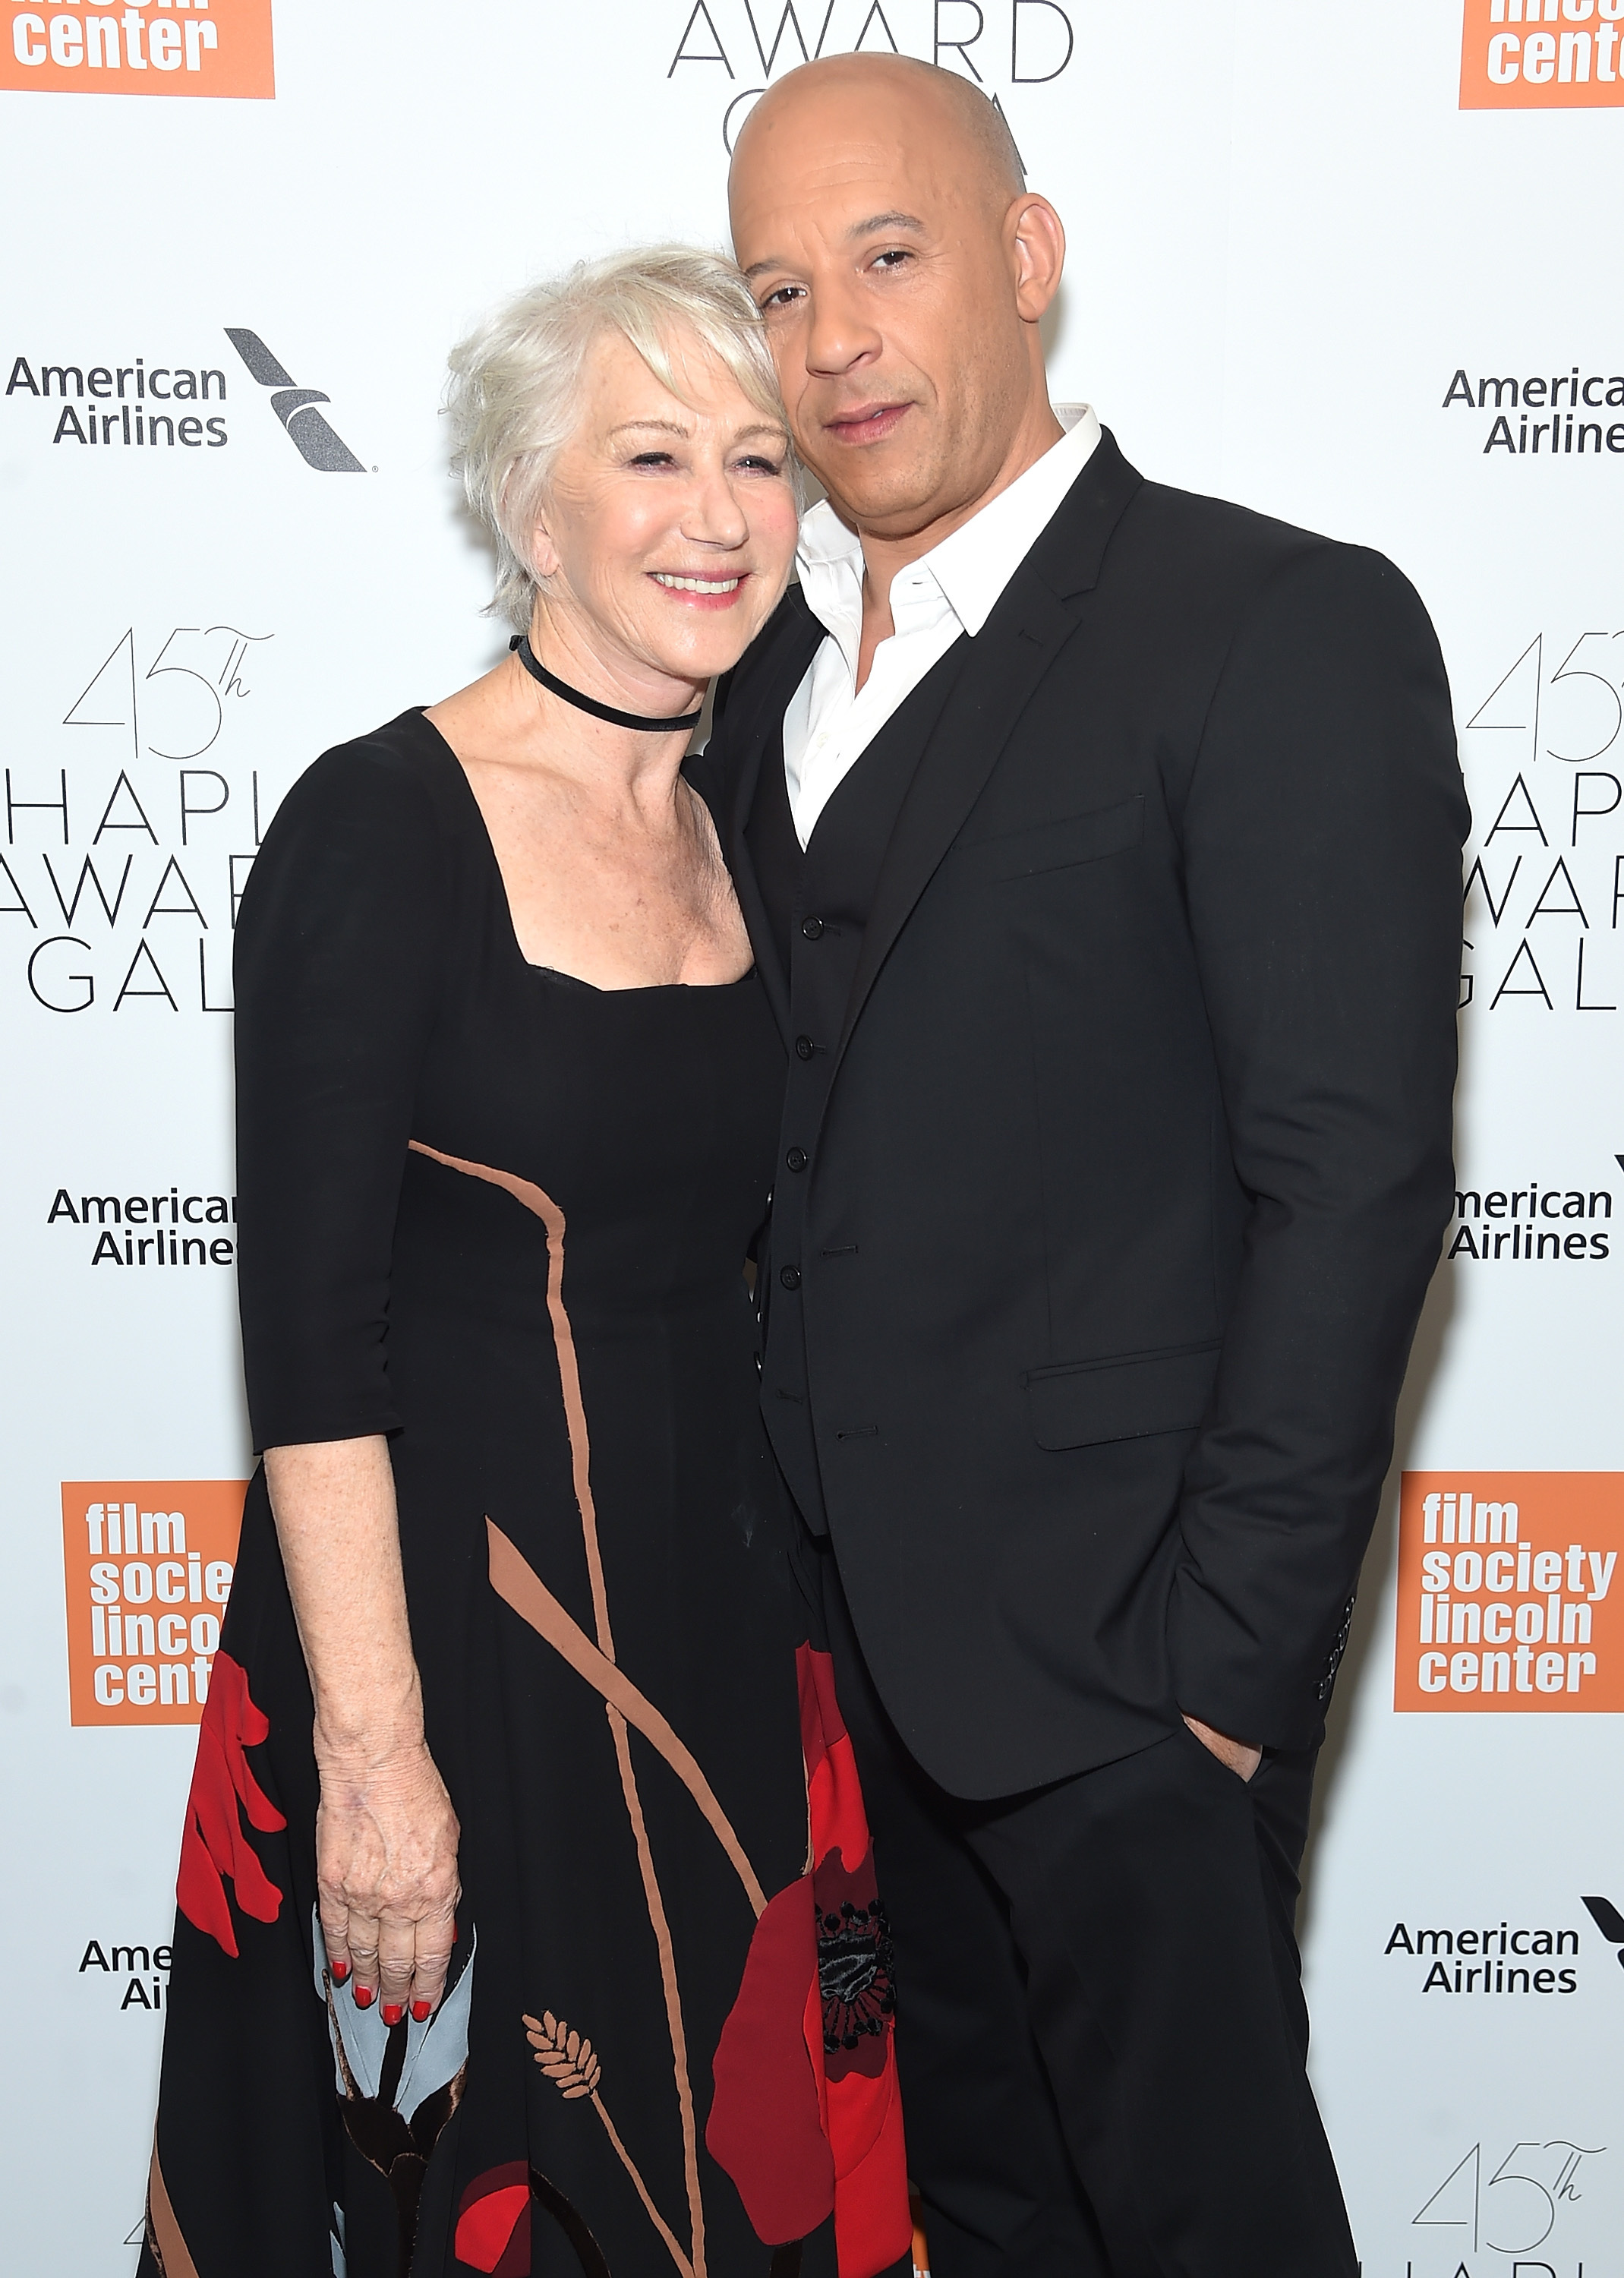 Helen Mirren and Vin Diesel attend the 45th Chaplin Award Gala at Alice Tully Hall at Lincoln Center in New York City on April 30, 2018.